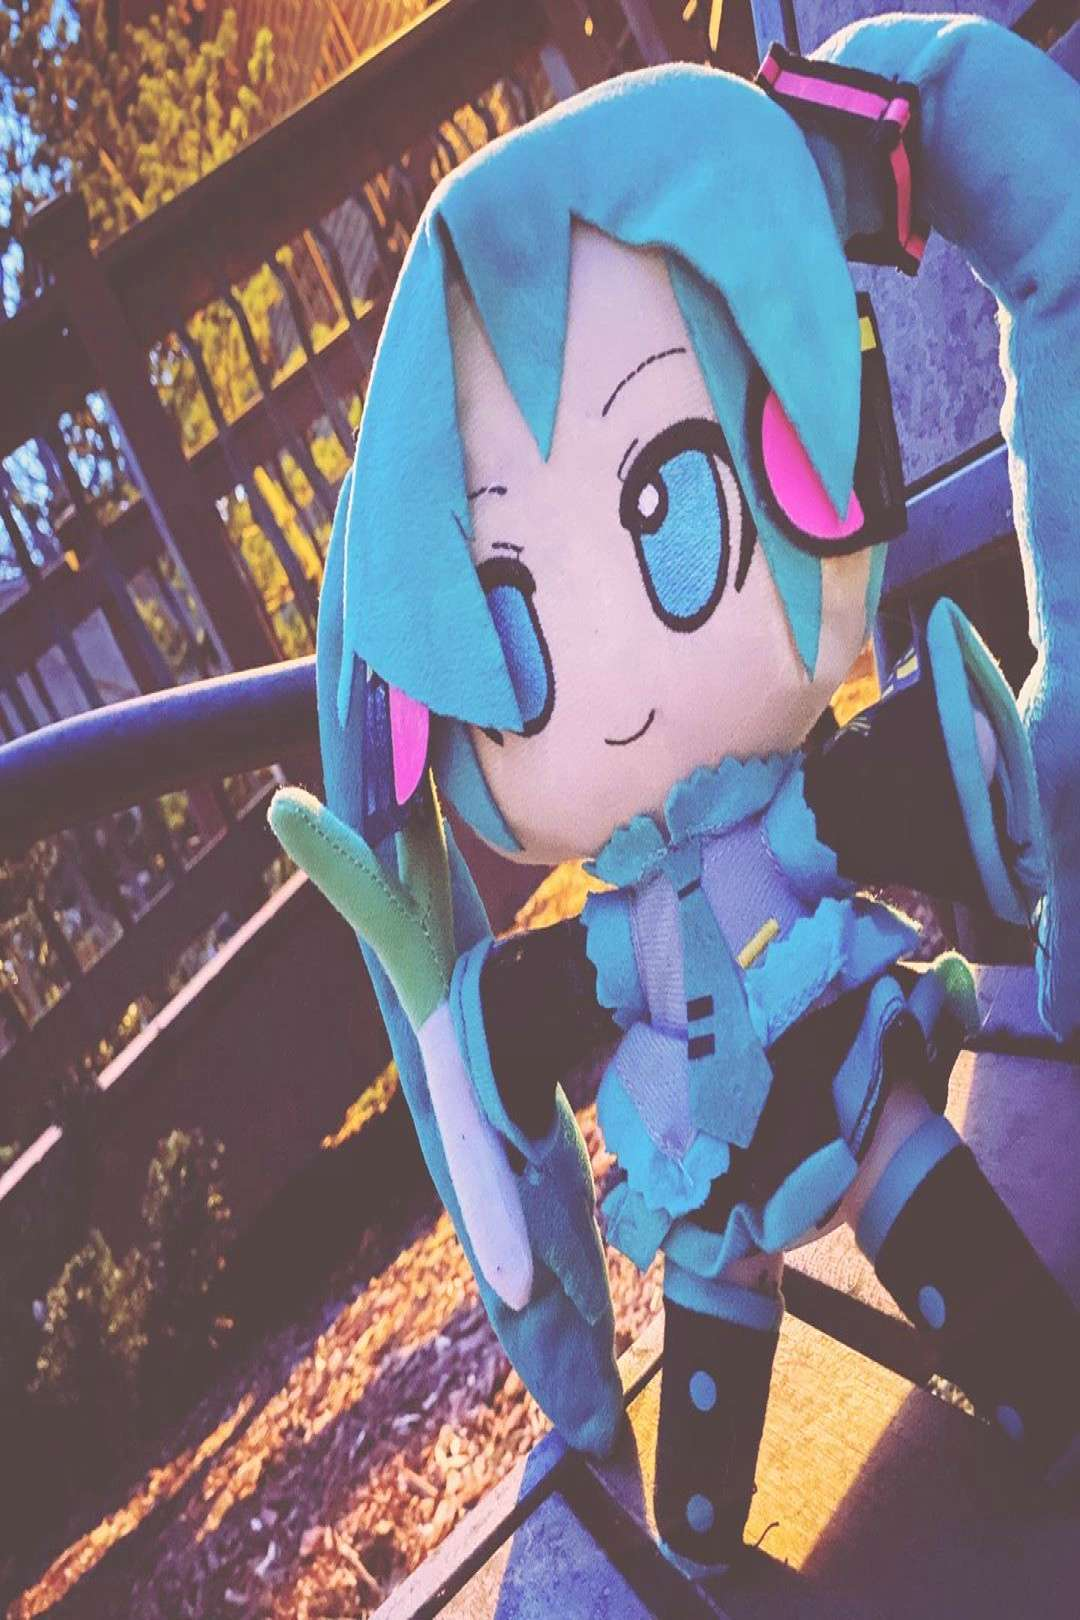 took my miku plush out for a few pics!! this is filler until I ge